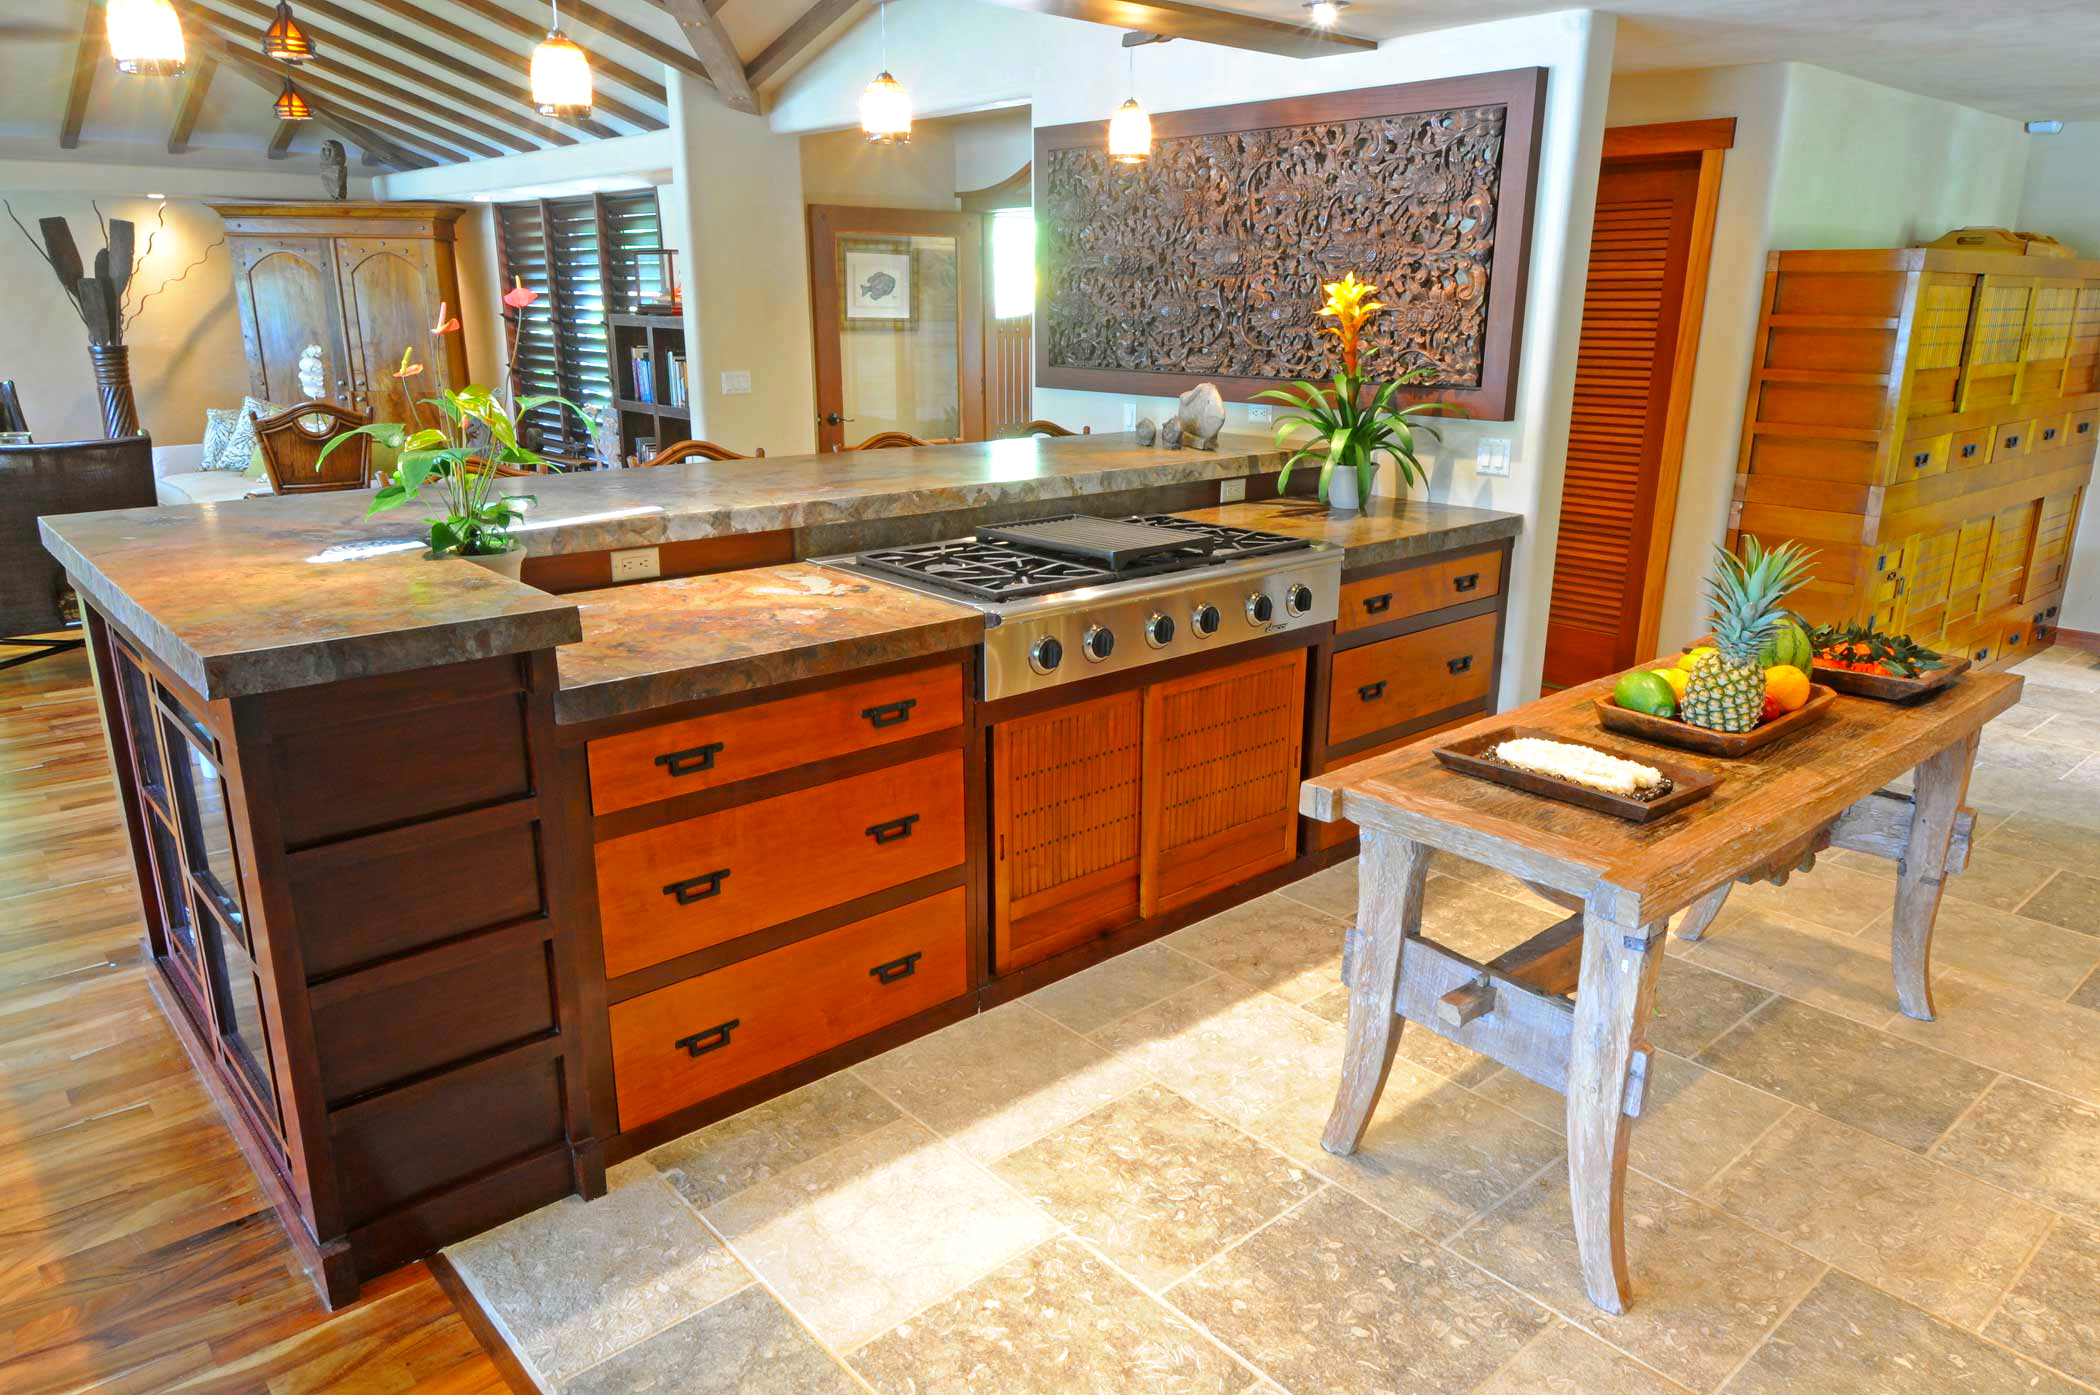 Balinese Kitchen Design Design In Action The Kauai Kitchen Before And After Trilogybuilds